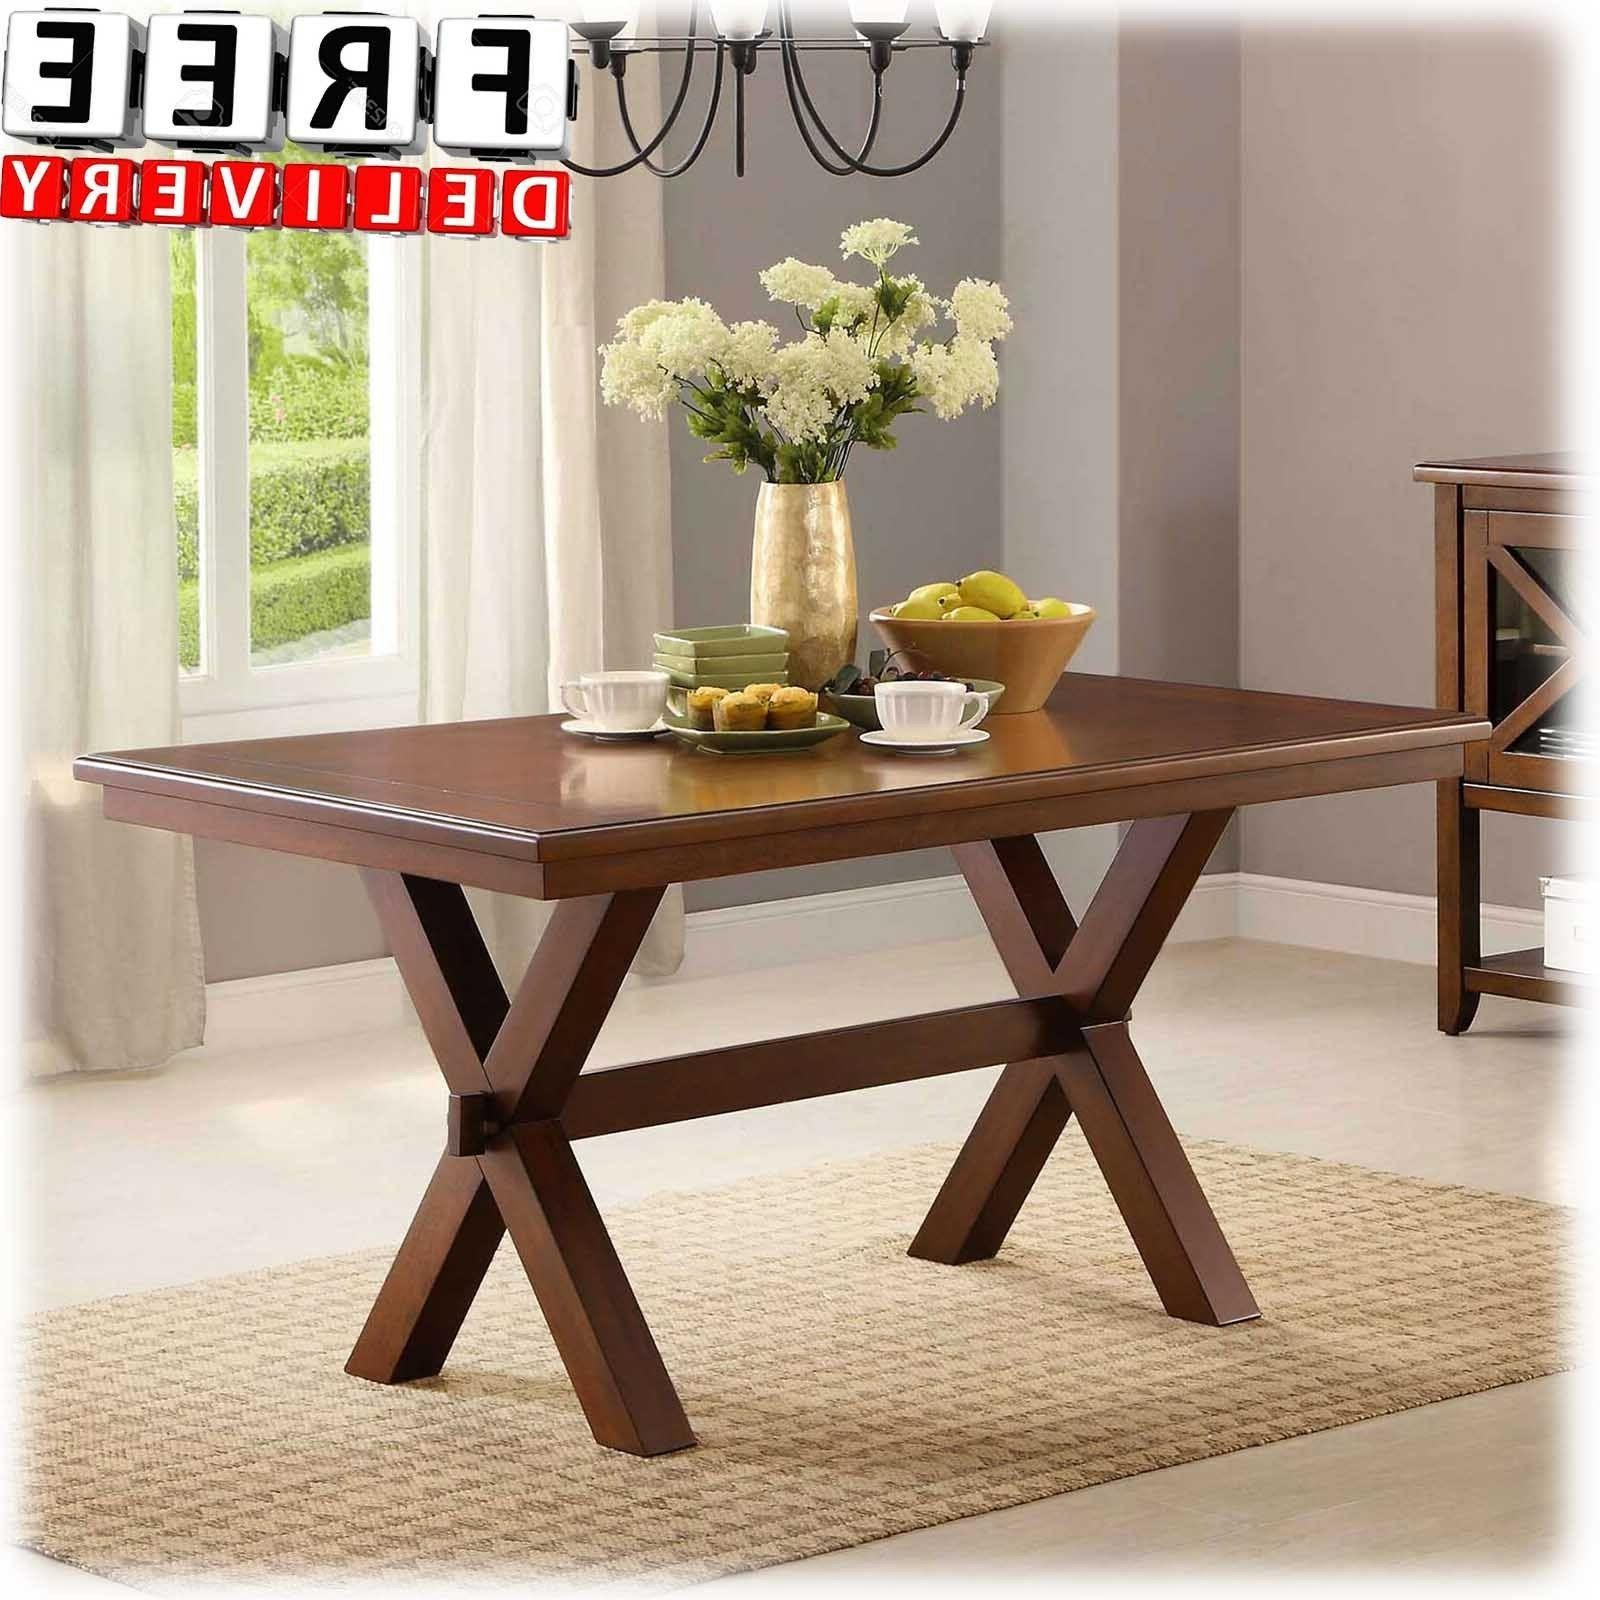 Wood Dining Table Rectangle Kitchen Solid Brown Home Office